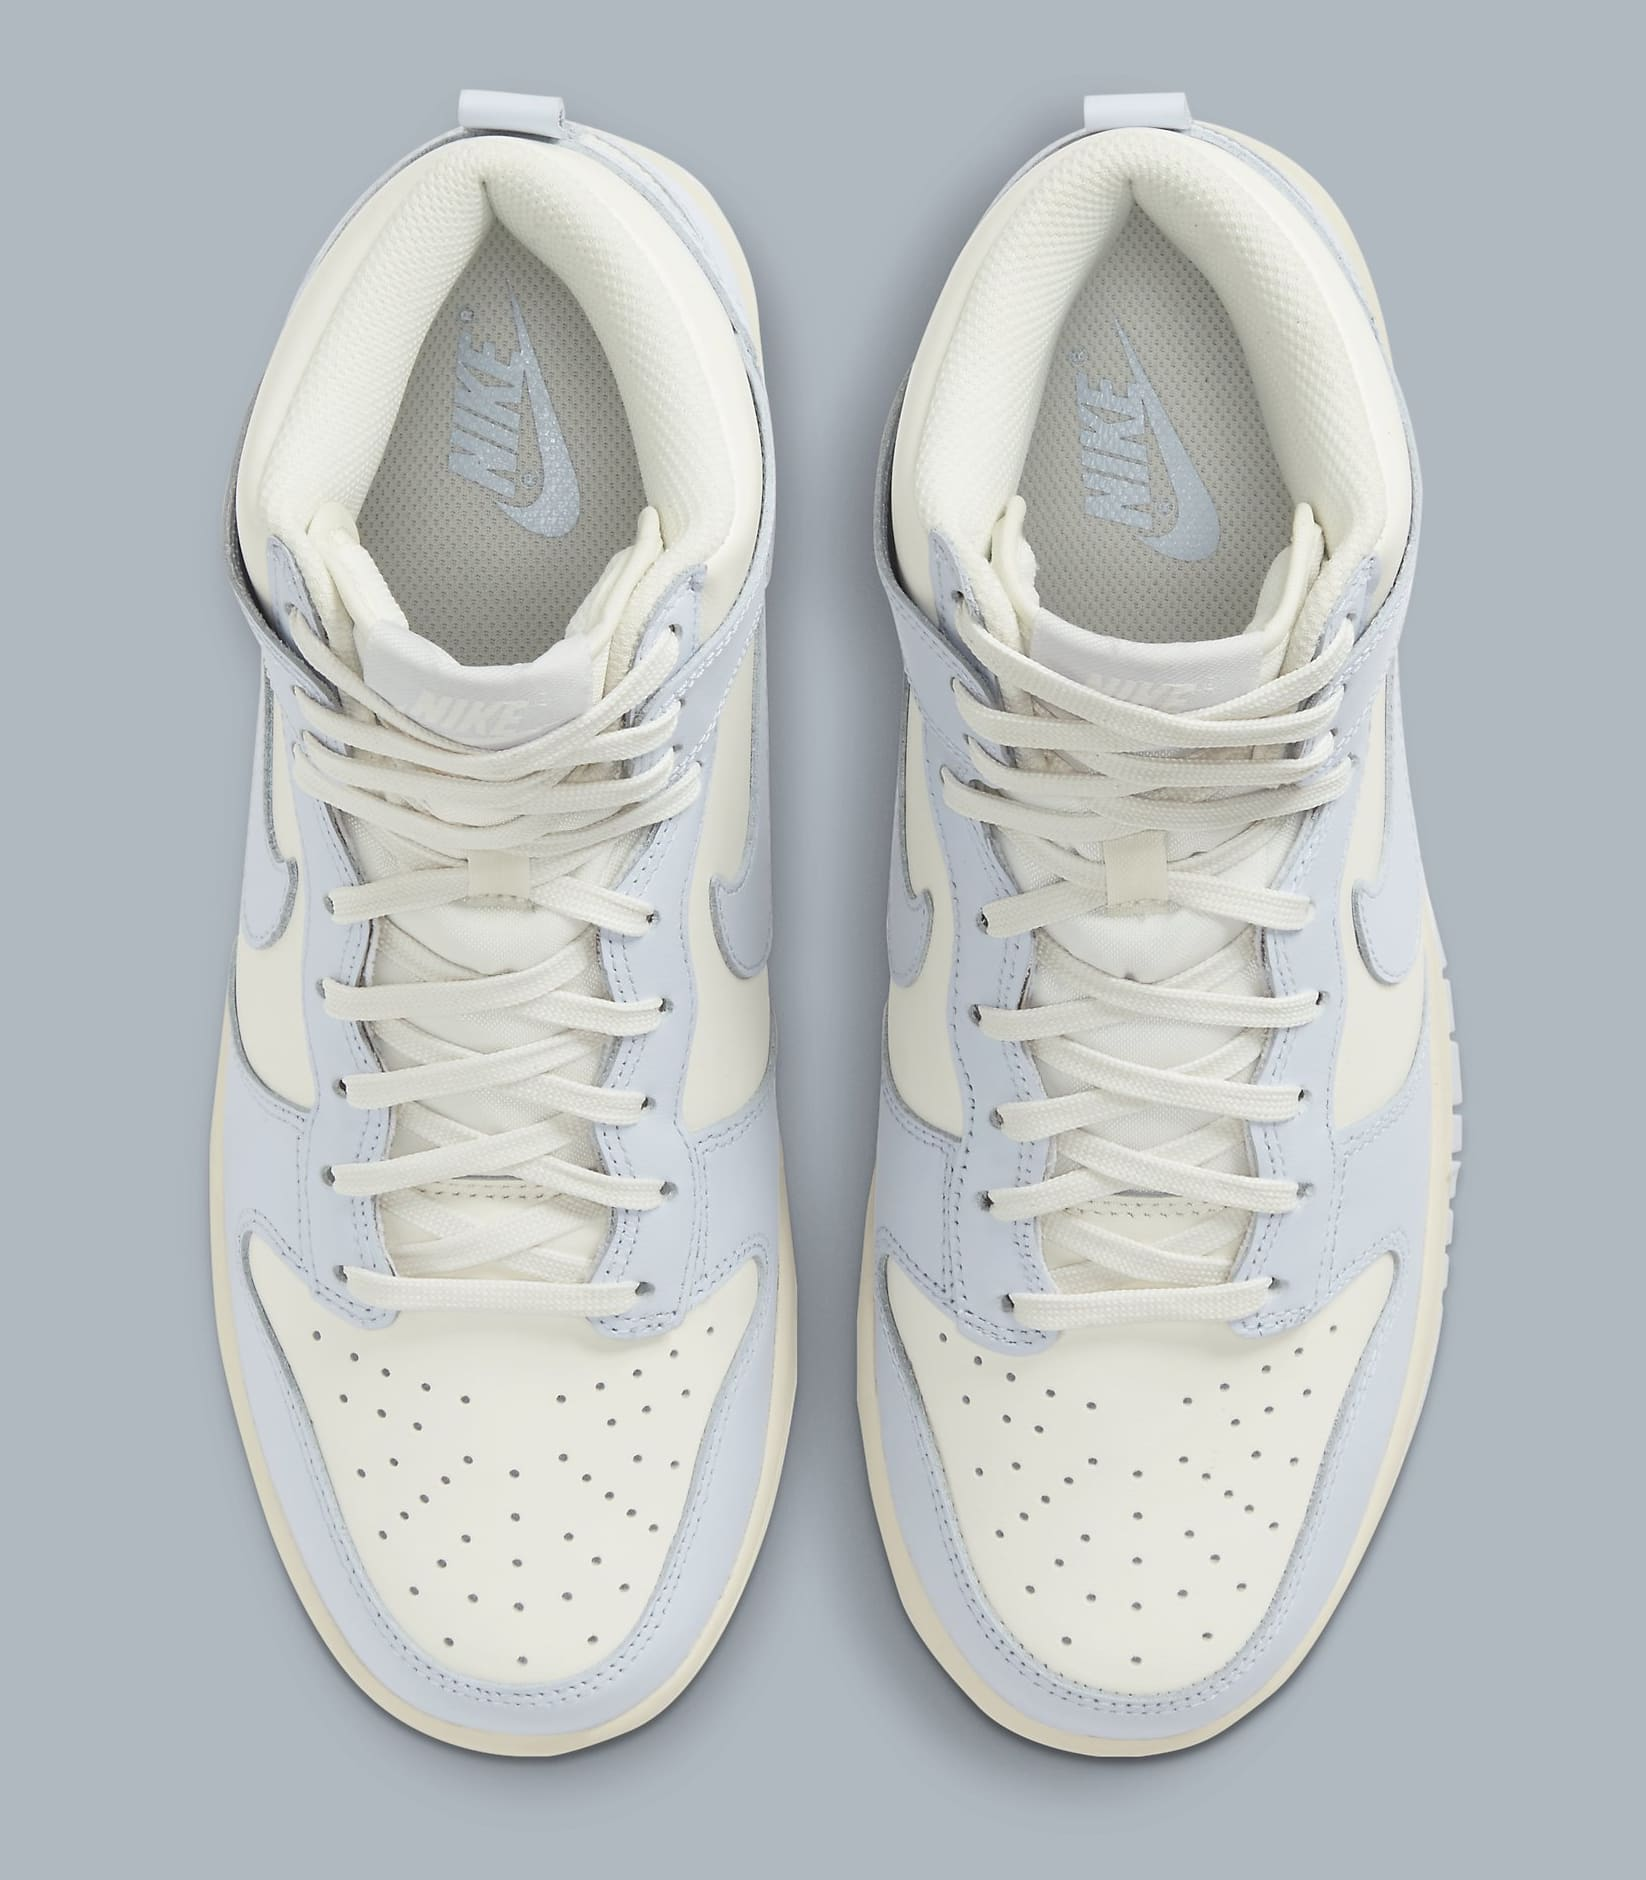 Nike Dunk High Women's 'Pale Ivory' DD1869-102 Top